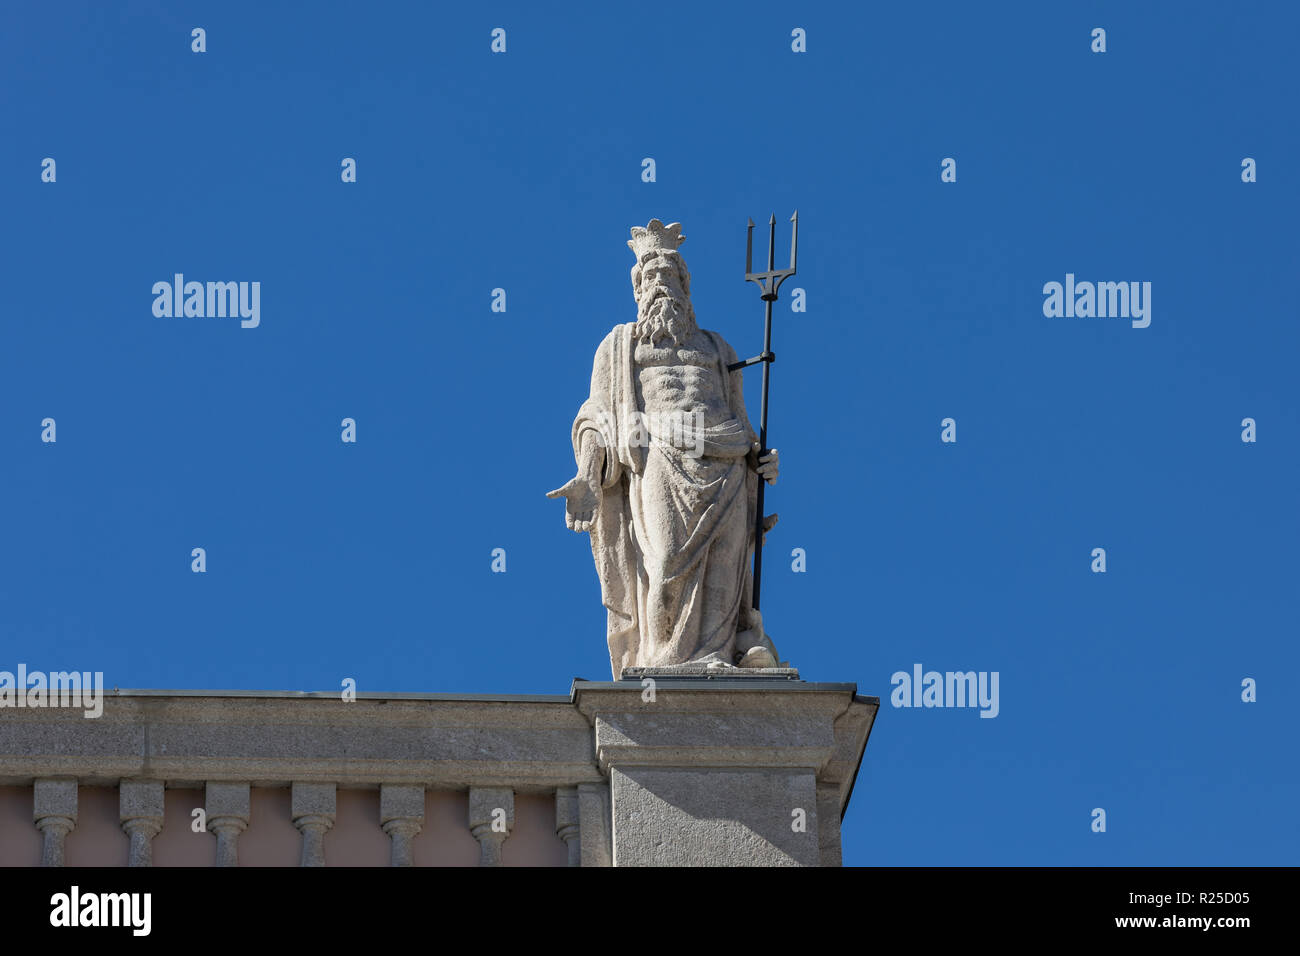 Statue of Roman god Neptune (Greek Poseidon) at the old Stock Exchange building (Palazzo della Borsa Vecchia) in Trieste, Friuli Venezia Giulia, Italy - Stock Image